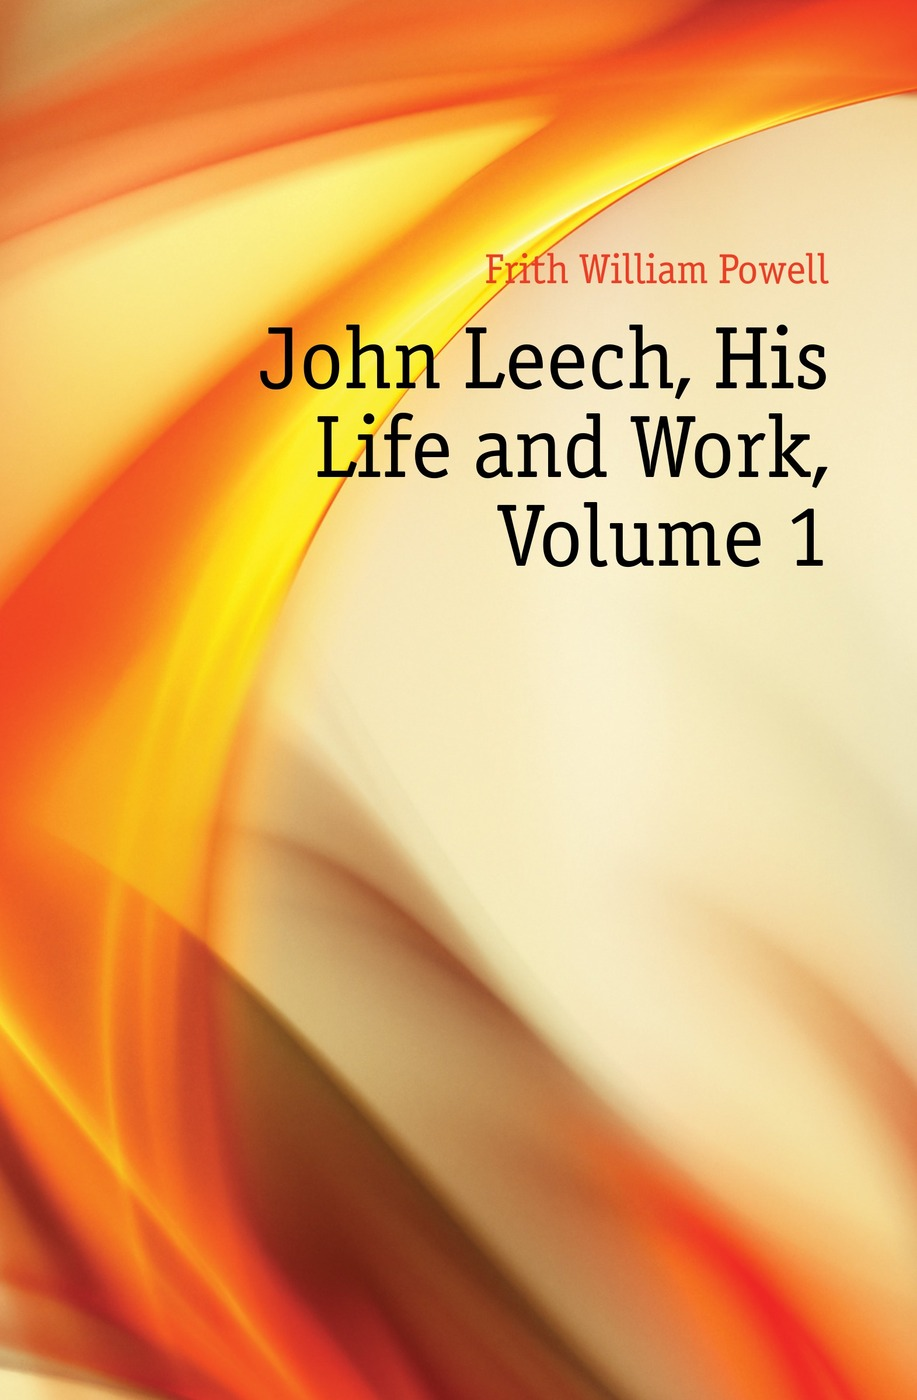 Frith William Powell John Leech, His Life and Work, Volume 1 frith william powell john leech his life and work vol 1 [of 2]